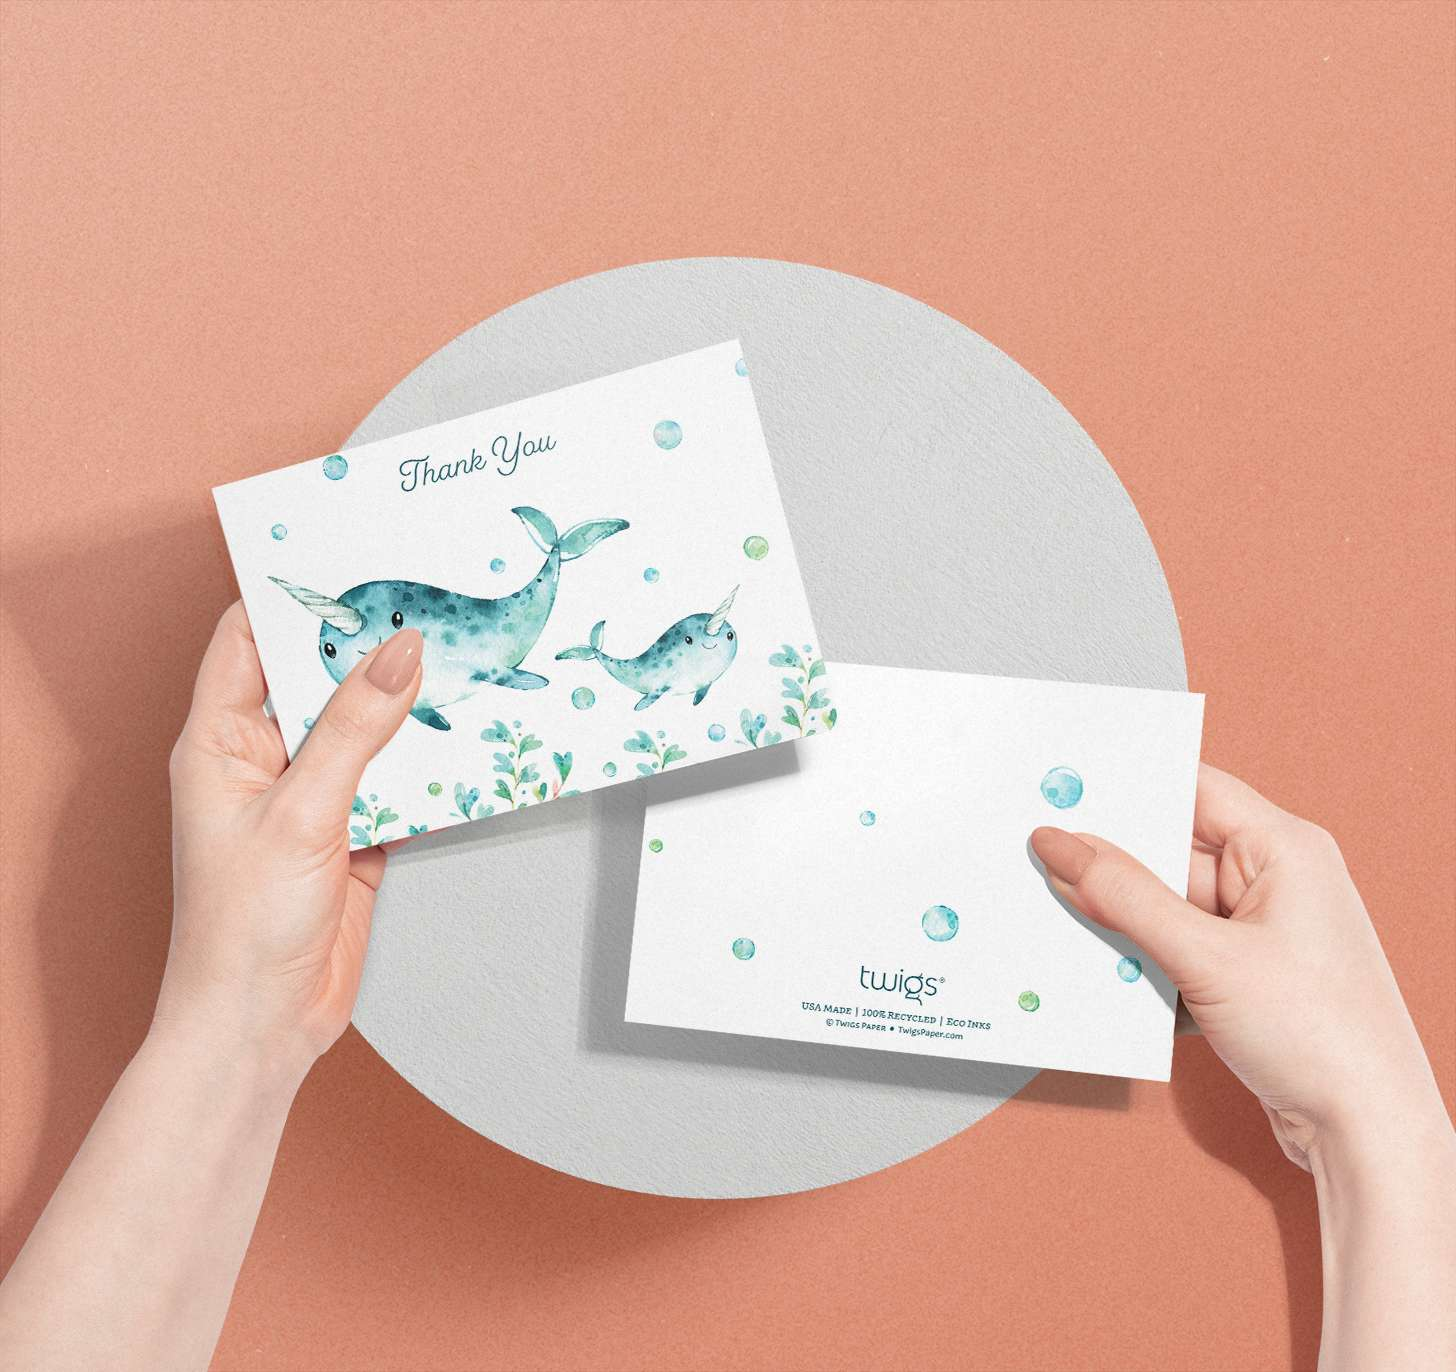 Woman's hands holding Mother and baby blue whale cards with bubbles